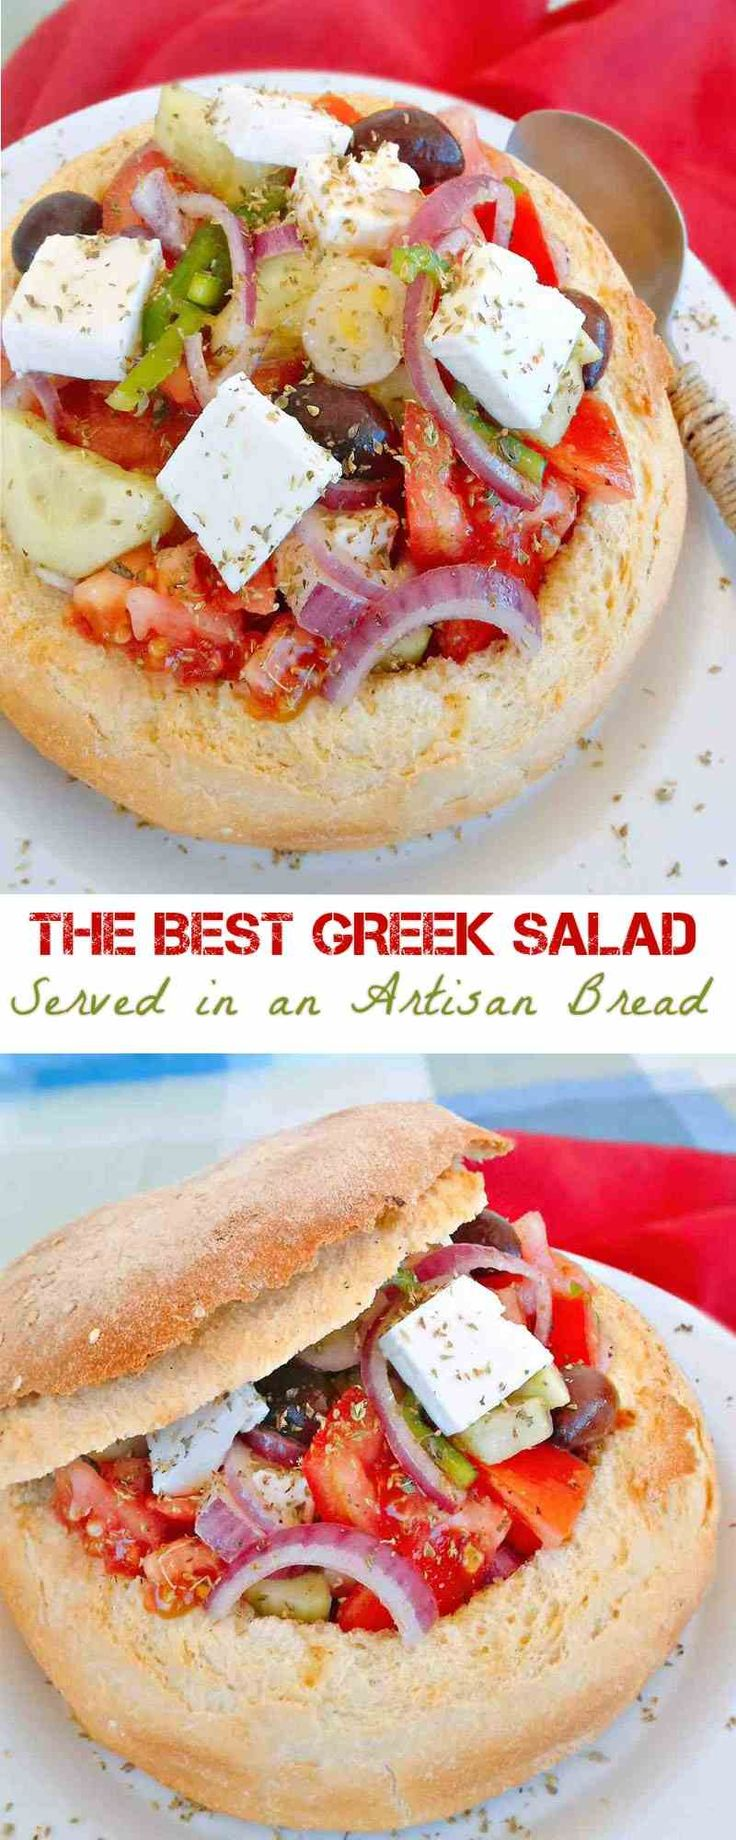 This Greek Salad is absolutely amazing. Being stuffed in an Artisan Bread, that soaks all the flavors from the delicious dressing.